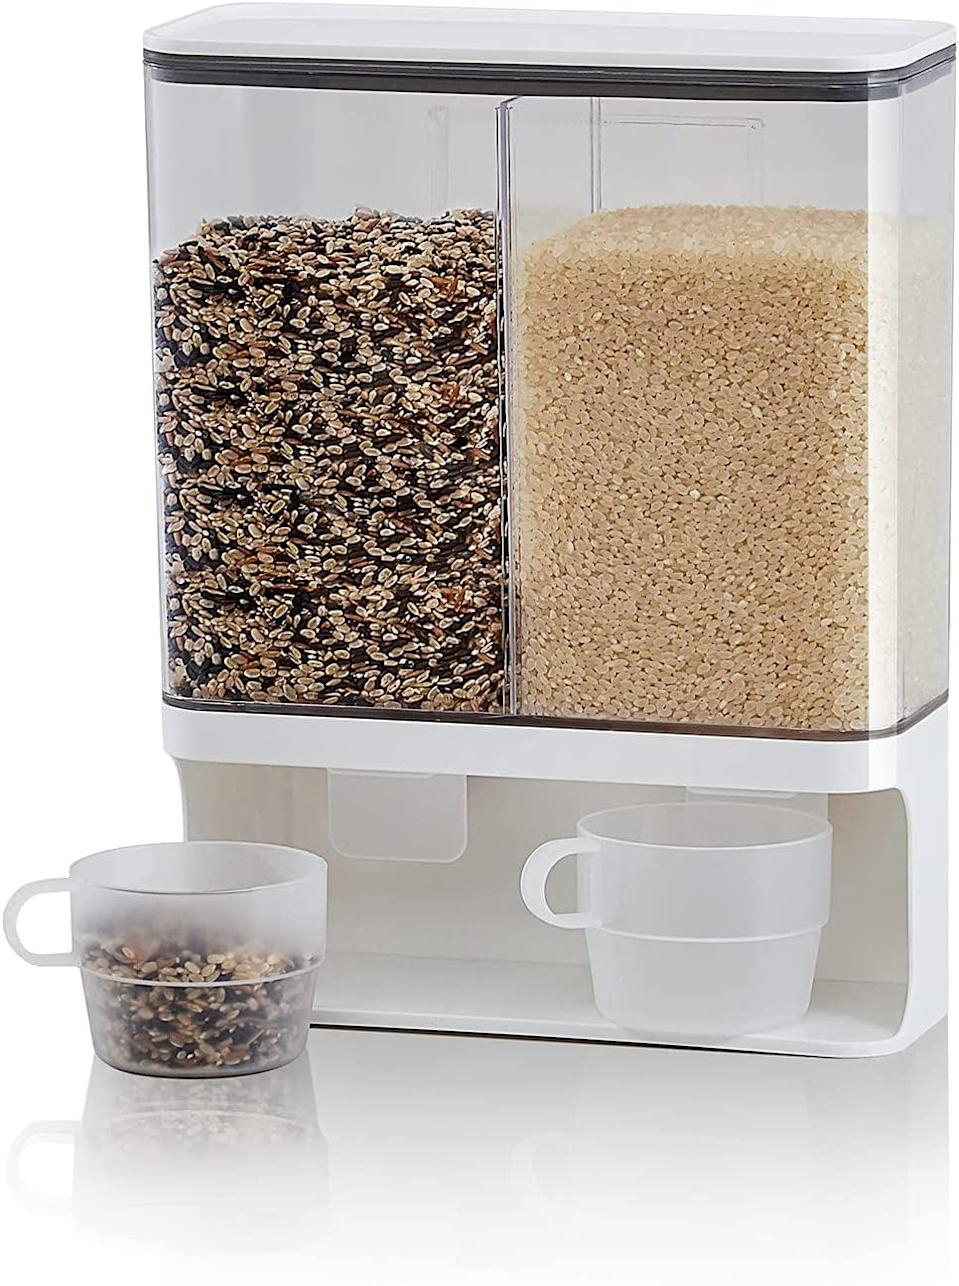 <p>Organize your dry grains and legumes with this <span>Wall Mounted Automatic Dry Food Dispenser with Lids and 2 rice cups</span> ($27). It will make cooking your favorite meals a lot easier and cleaner.</p>